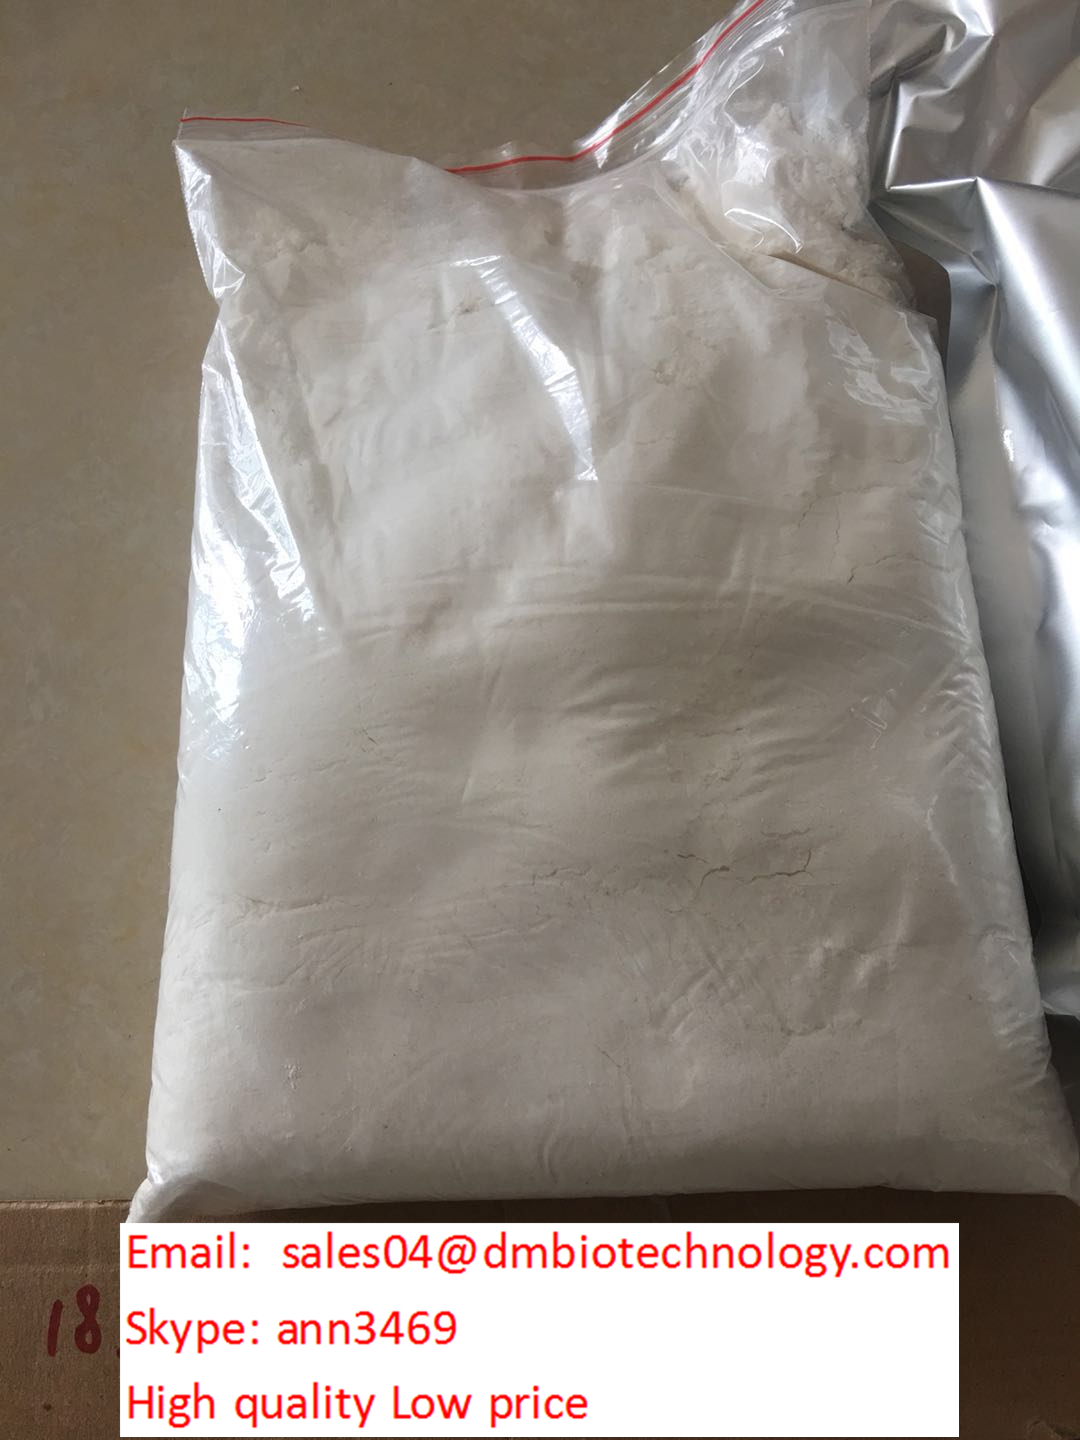 White Color Legal AnabolicSteroids Powder Methenolone Enanthate CAS 303-42-4 Muscle Building sales04